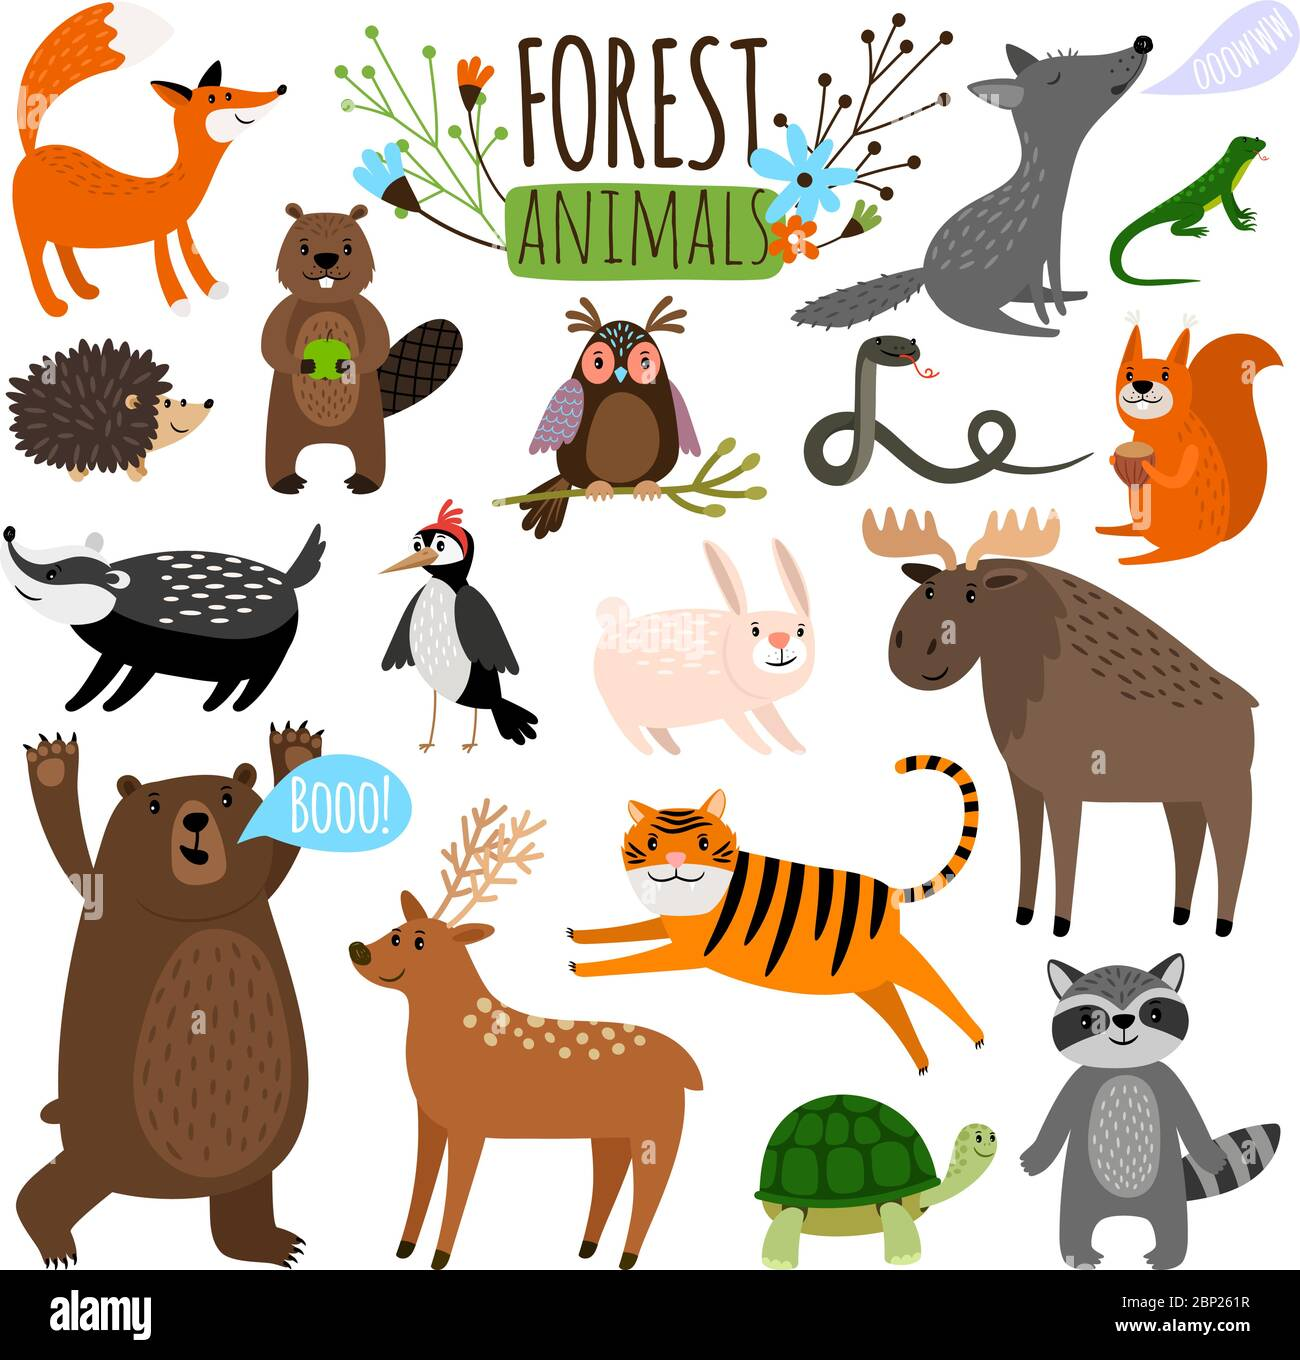 The animals that live in temperate evergreen forests include black bears, brown bears, deer, elk, small rodents, robins, owls, hares, raccoons, newts, flea the animals that live in temperate evergreen forests include black bears, brown bear. Forest Animals Woodland Cute Animal Set Drawing Vector Illustration Like Moose Or Deer And Raccoon Fox And Bear Isolated On White Stock Vector Image Art Alamy